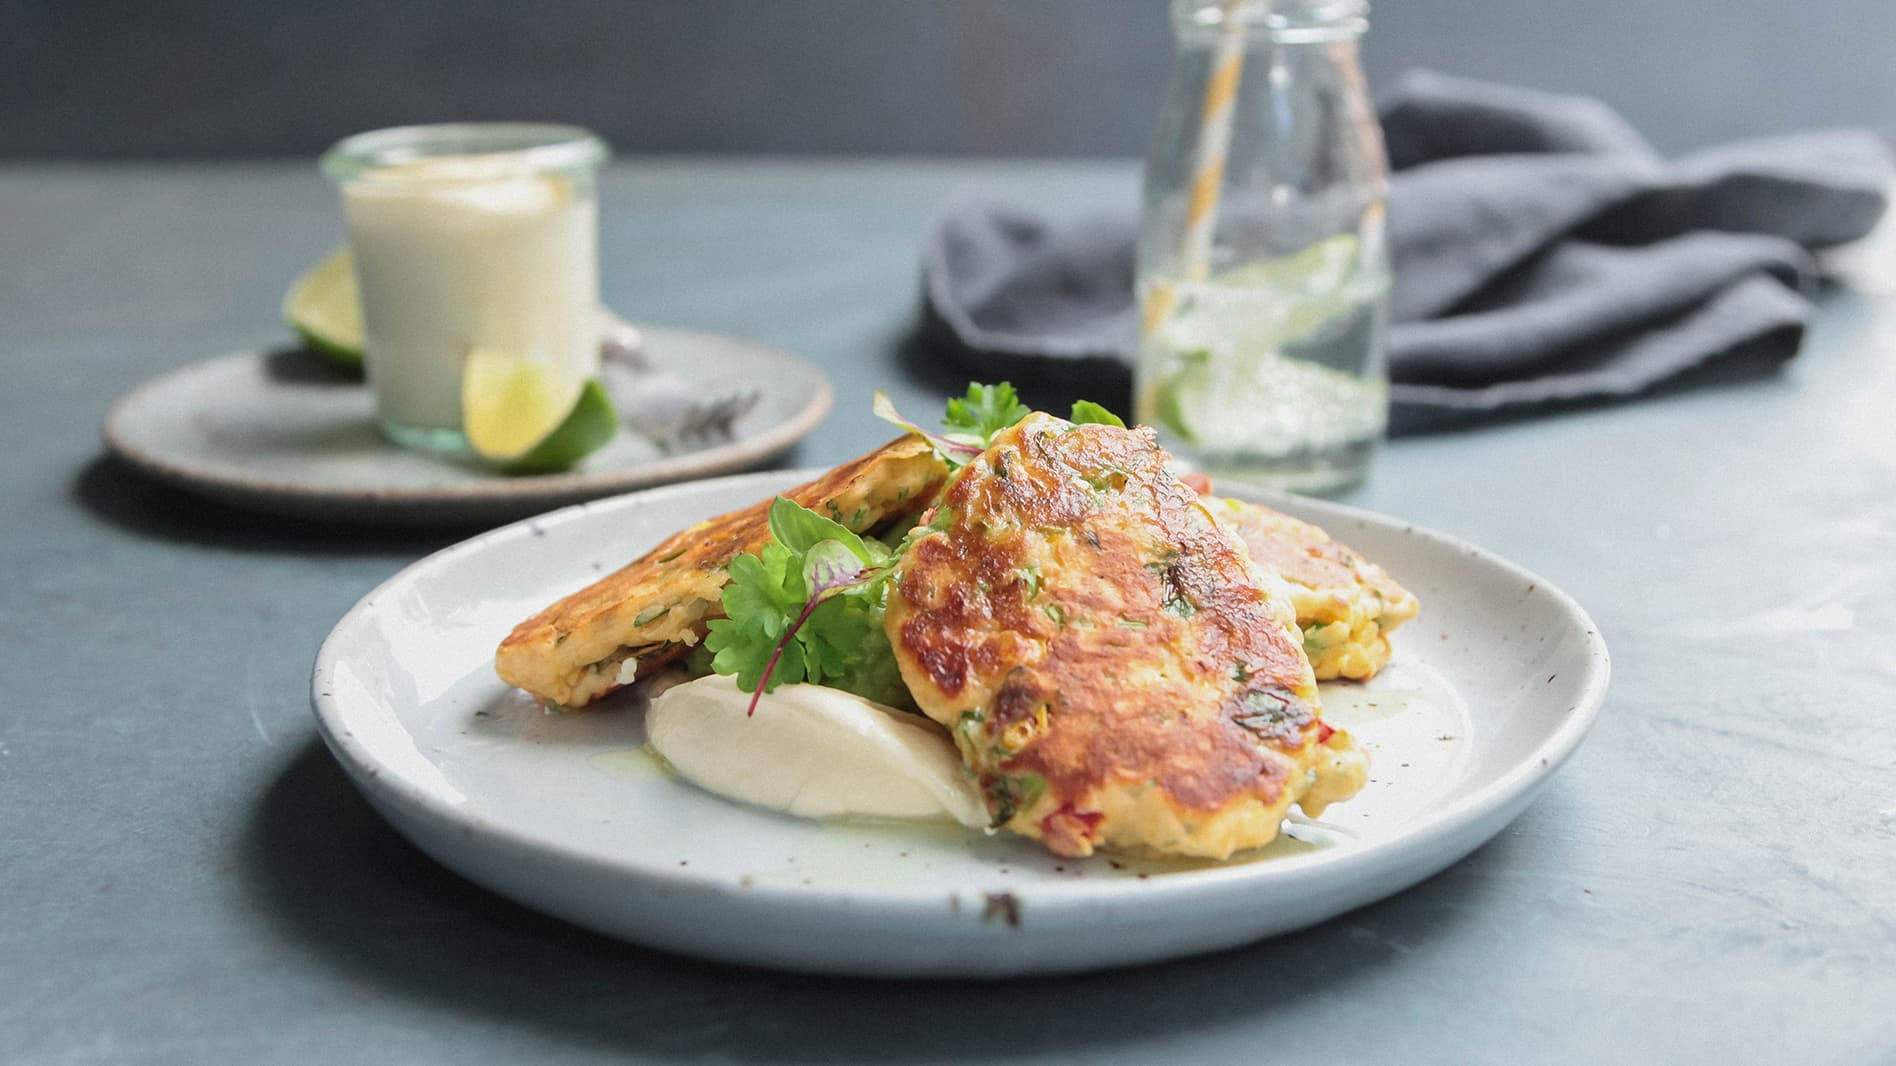 Corn Fritters with Smashed Avocado And Sour Cream